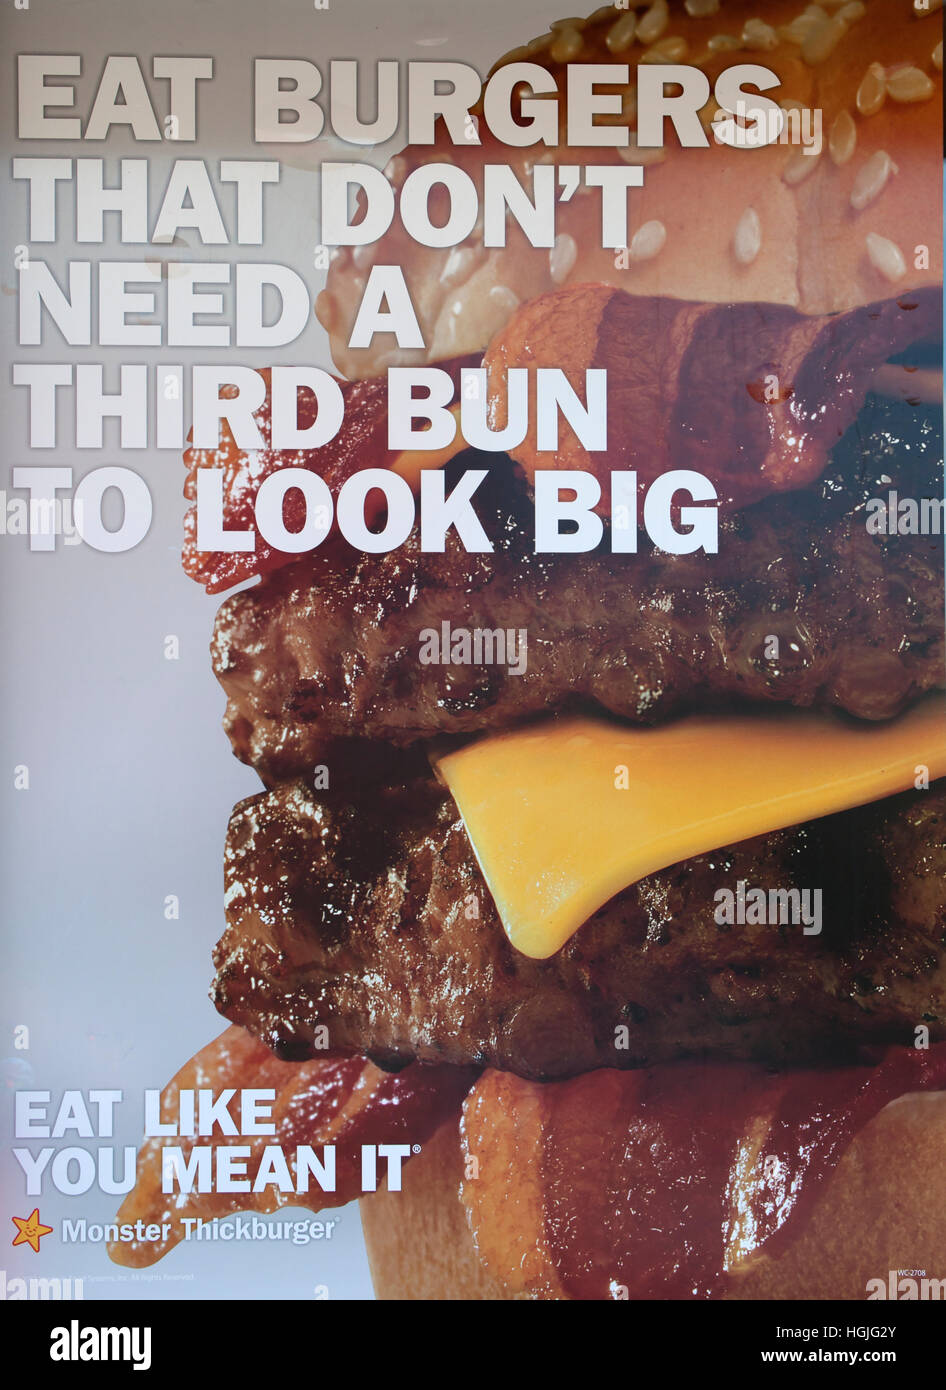 Promotional poster advertising big burgers on window of fast-food restaurant. St Paul Minnesota MN USA - Stock Image